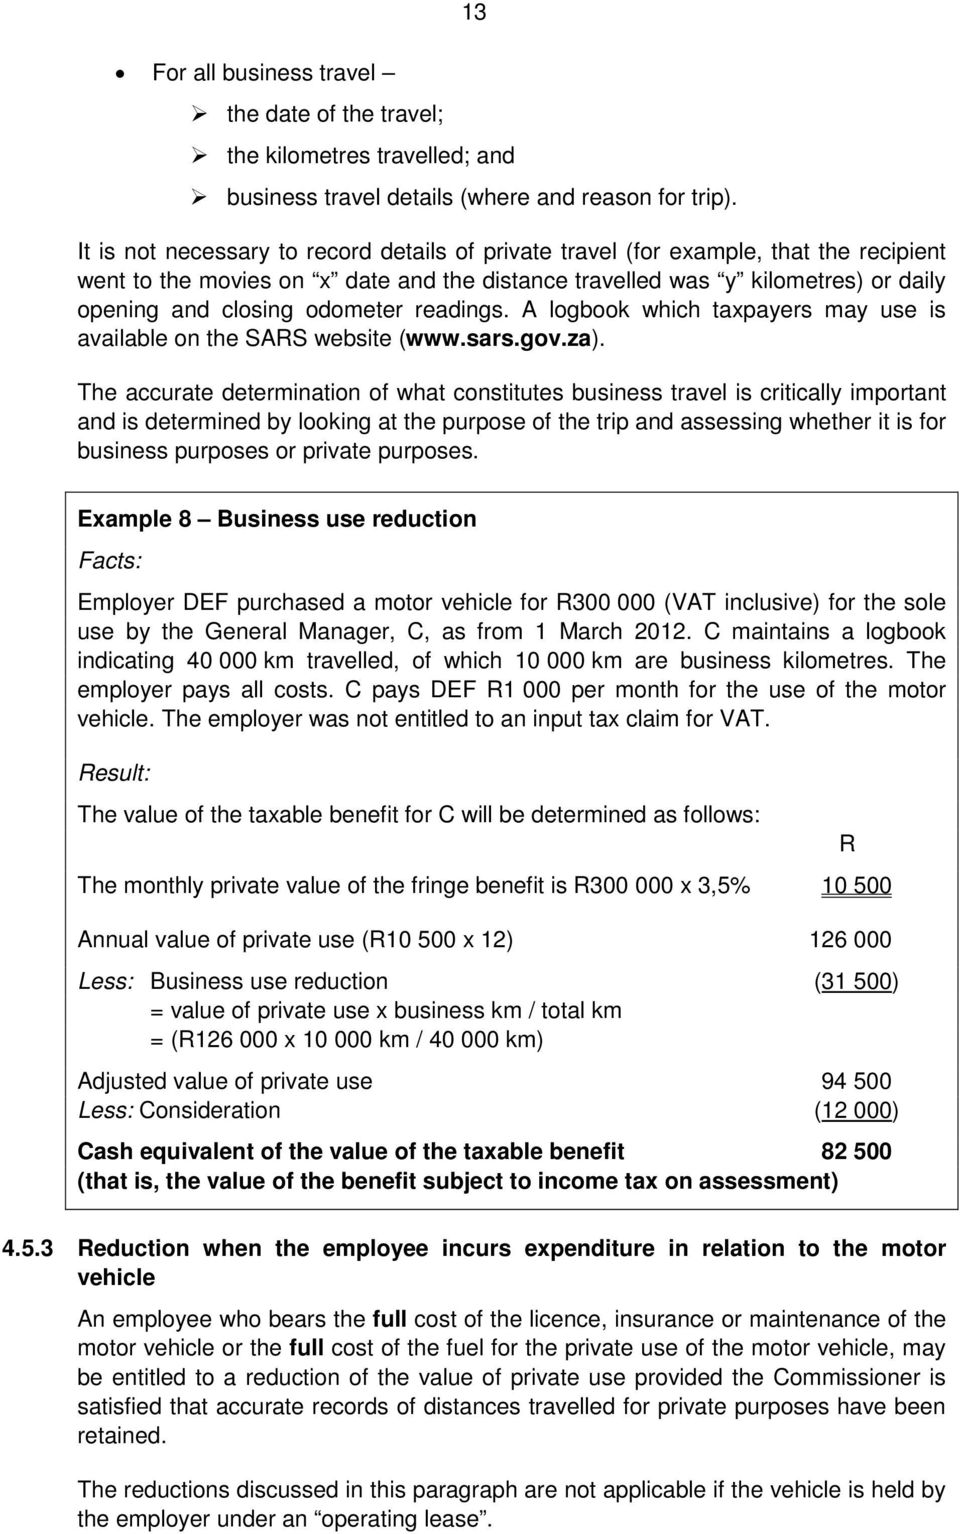 odometer readings. A logbook which taxpayers may use is available on the SARS website (www.sars.gov.za).